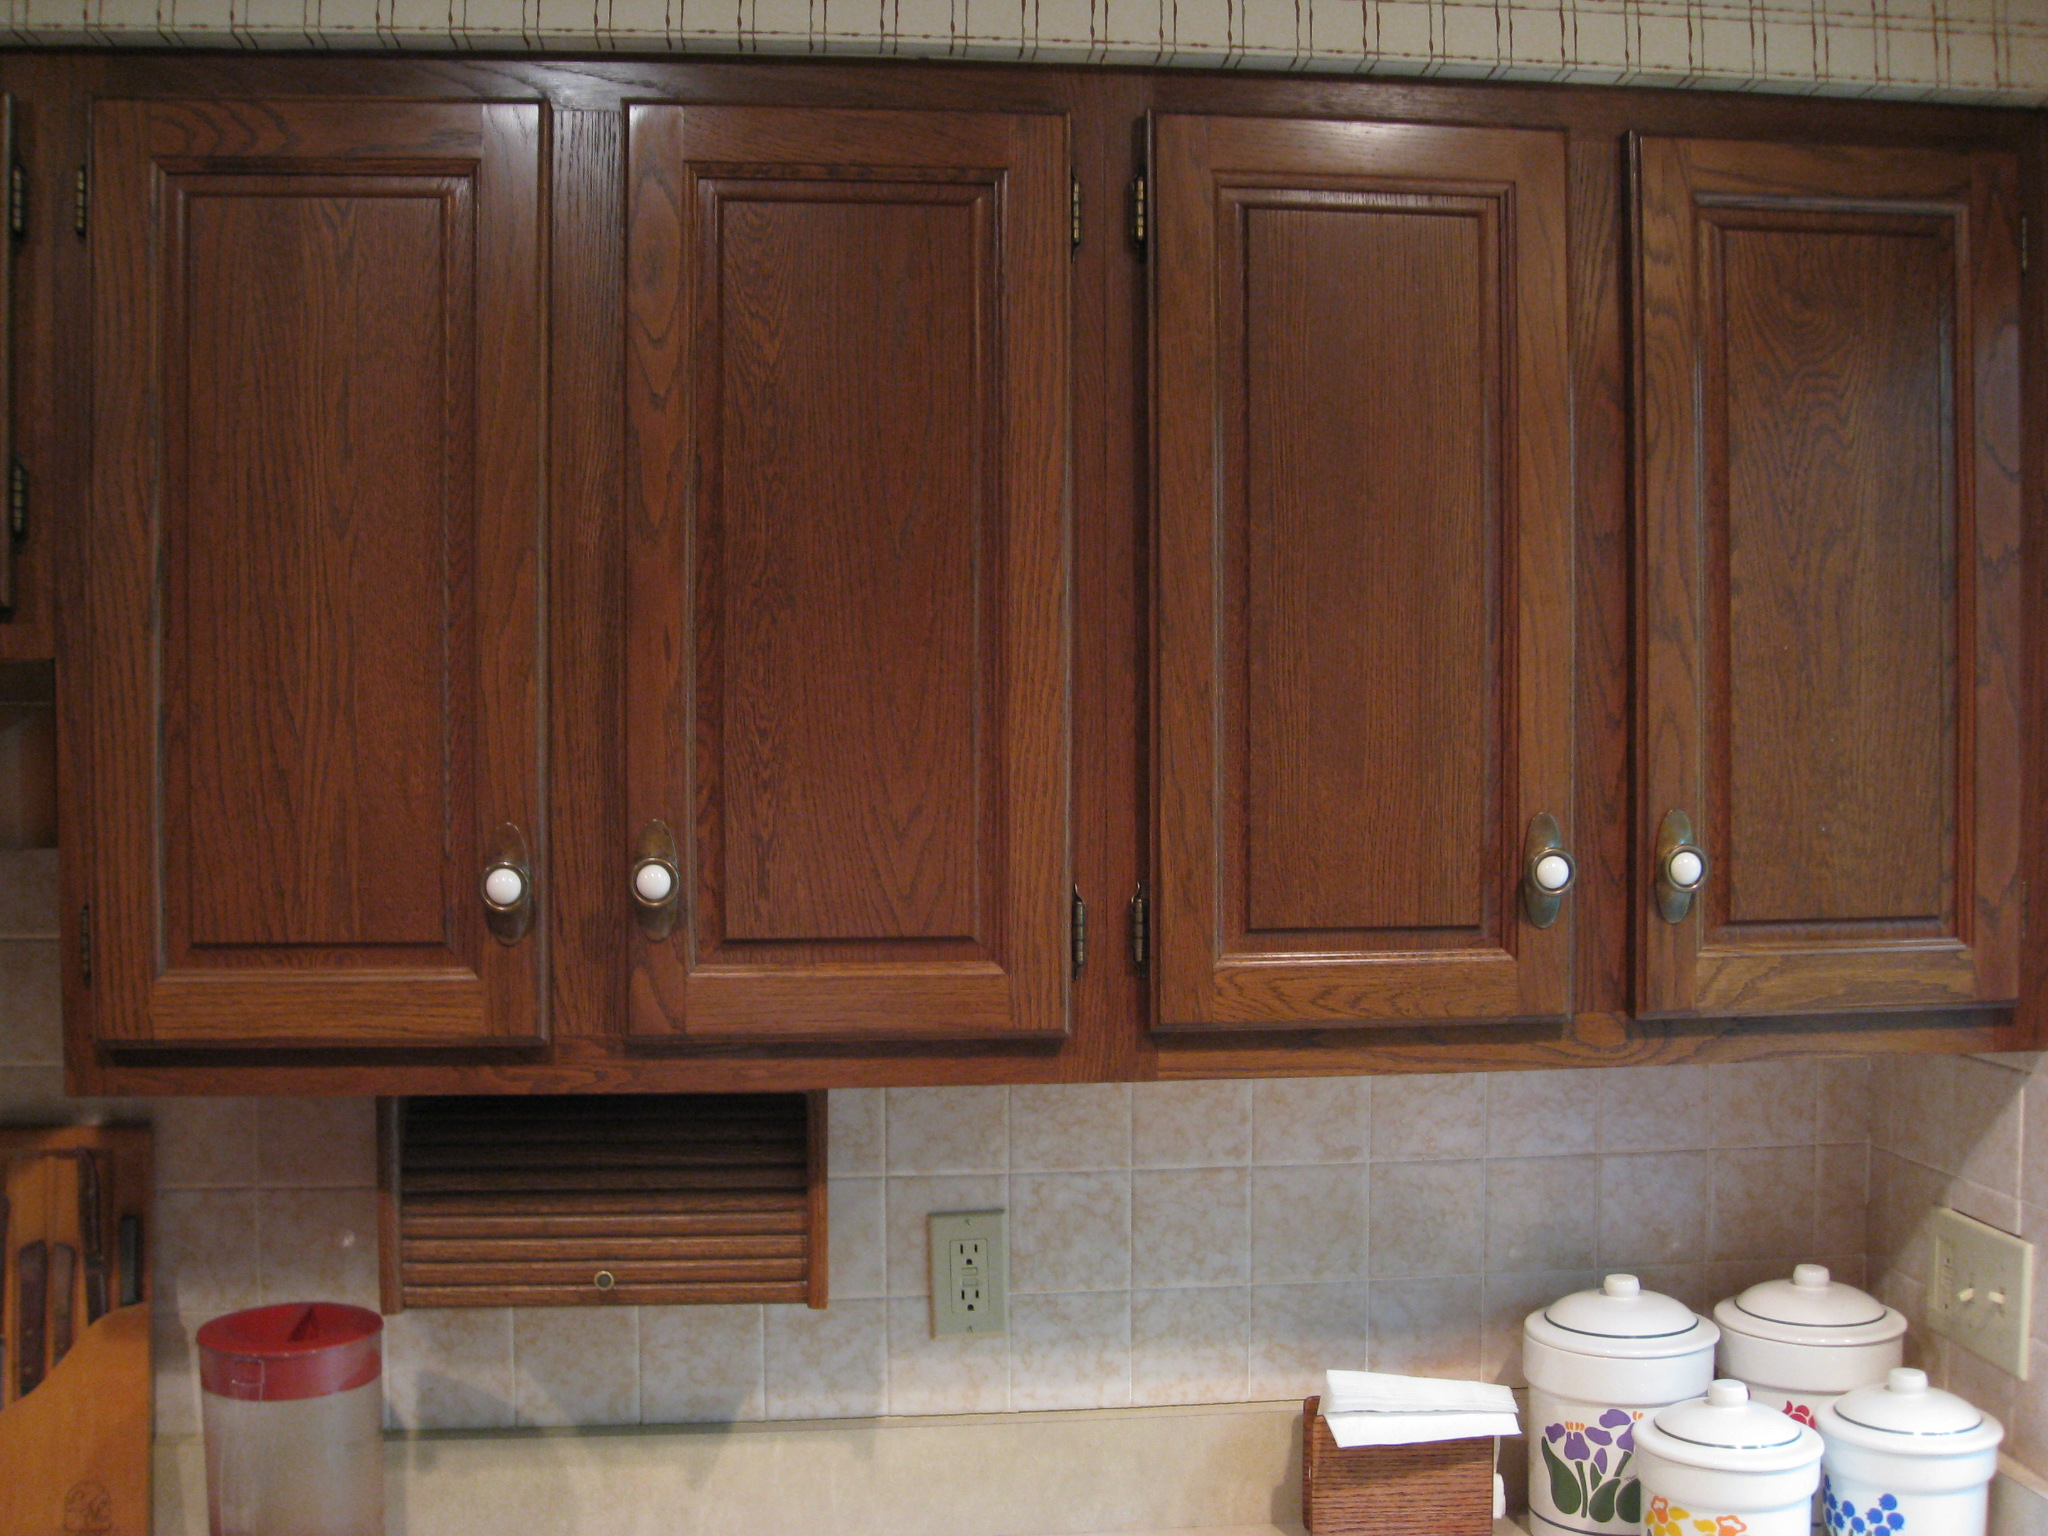 Best Product To Use To Clean Wood Painted Kitchen Cabinets